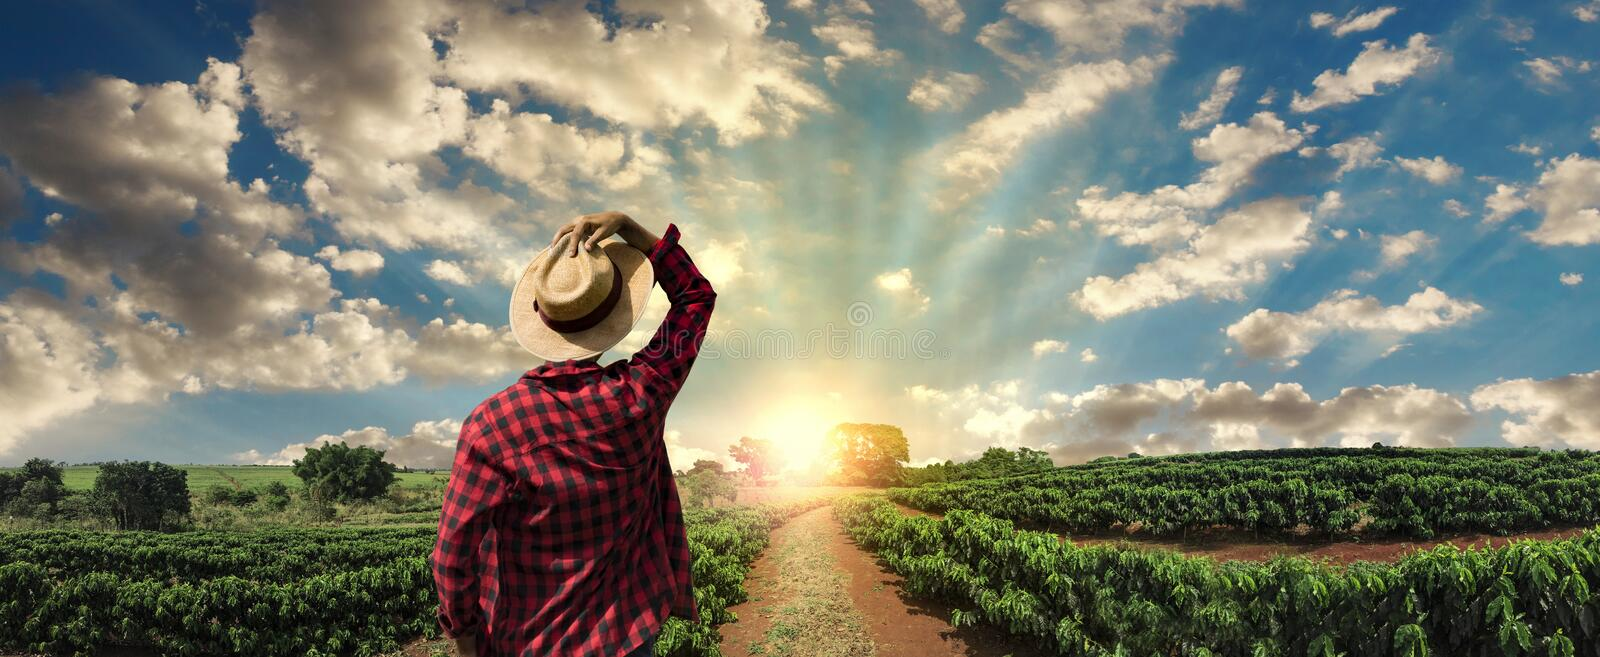 Farmer working on coffee field at sunset outdoor stock image